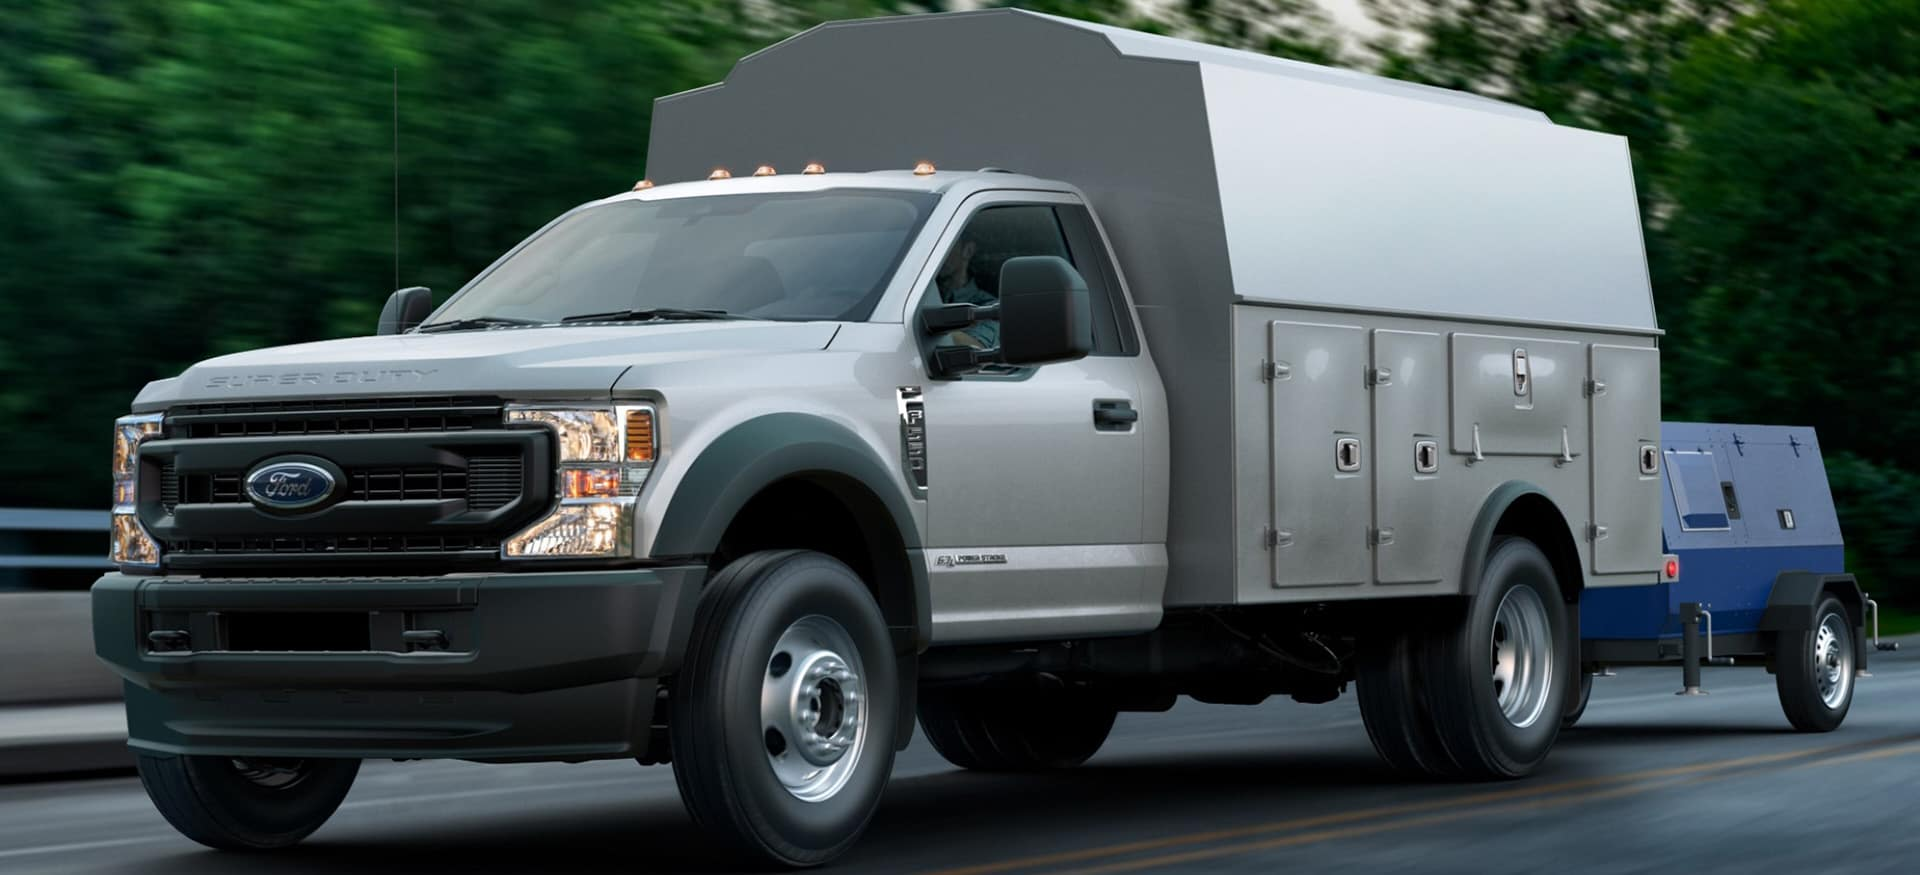 2021 Ford Super Duty Chassic Cab in St. Louis